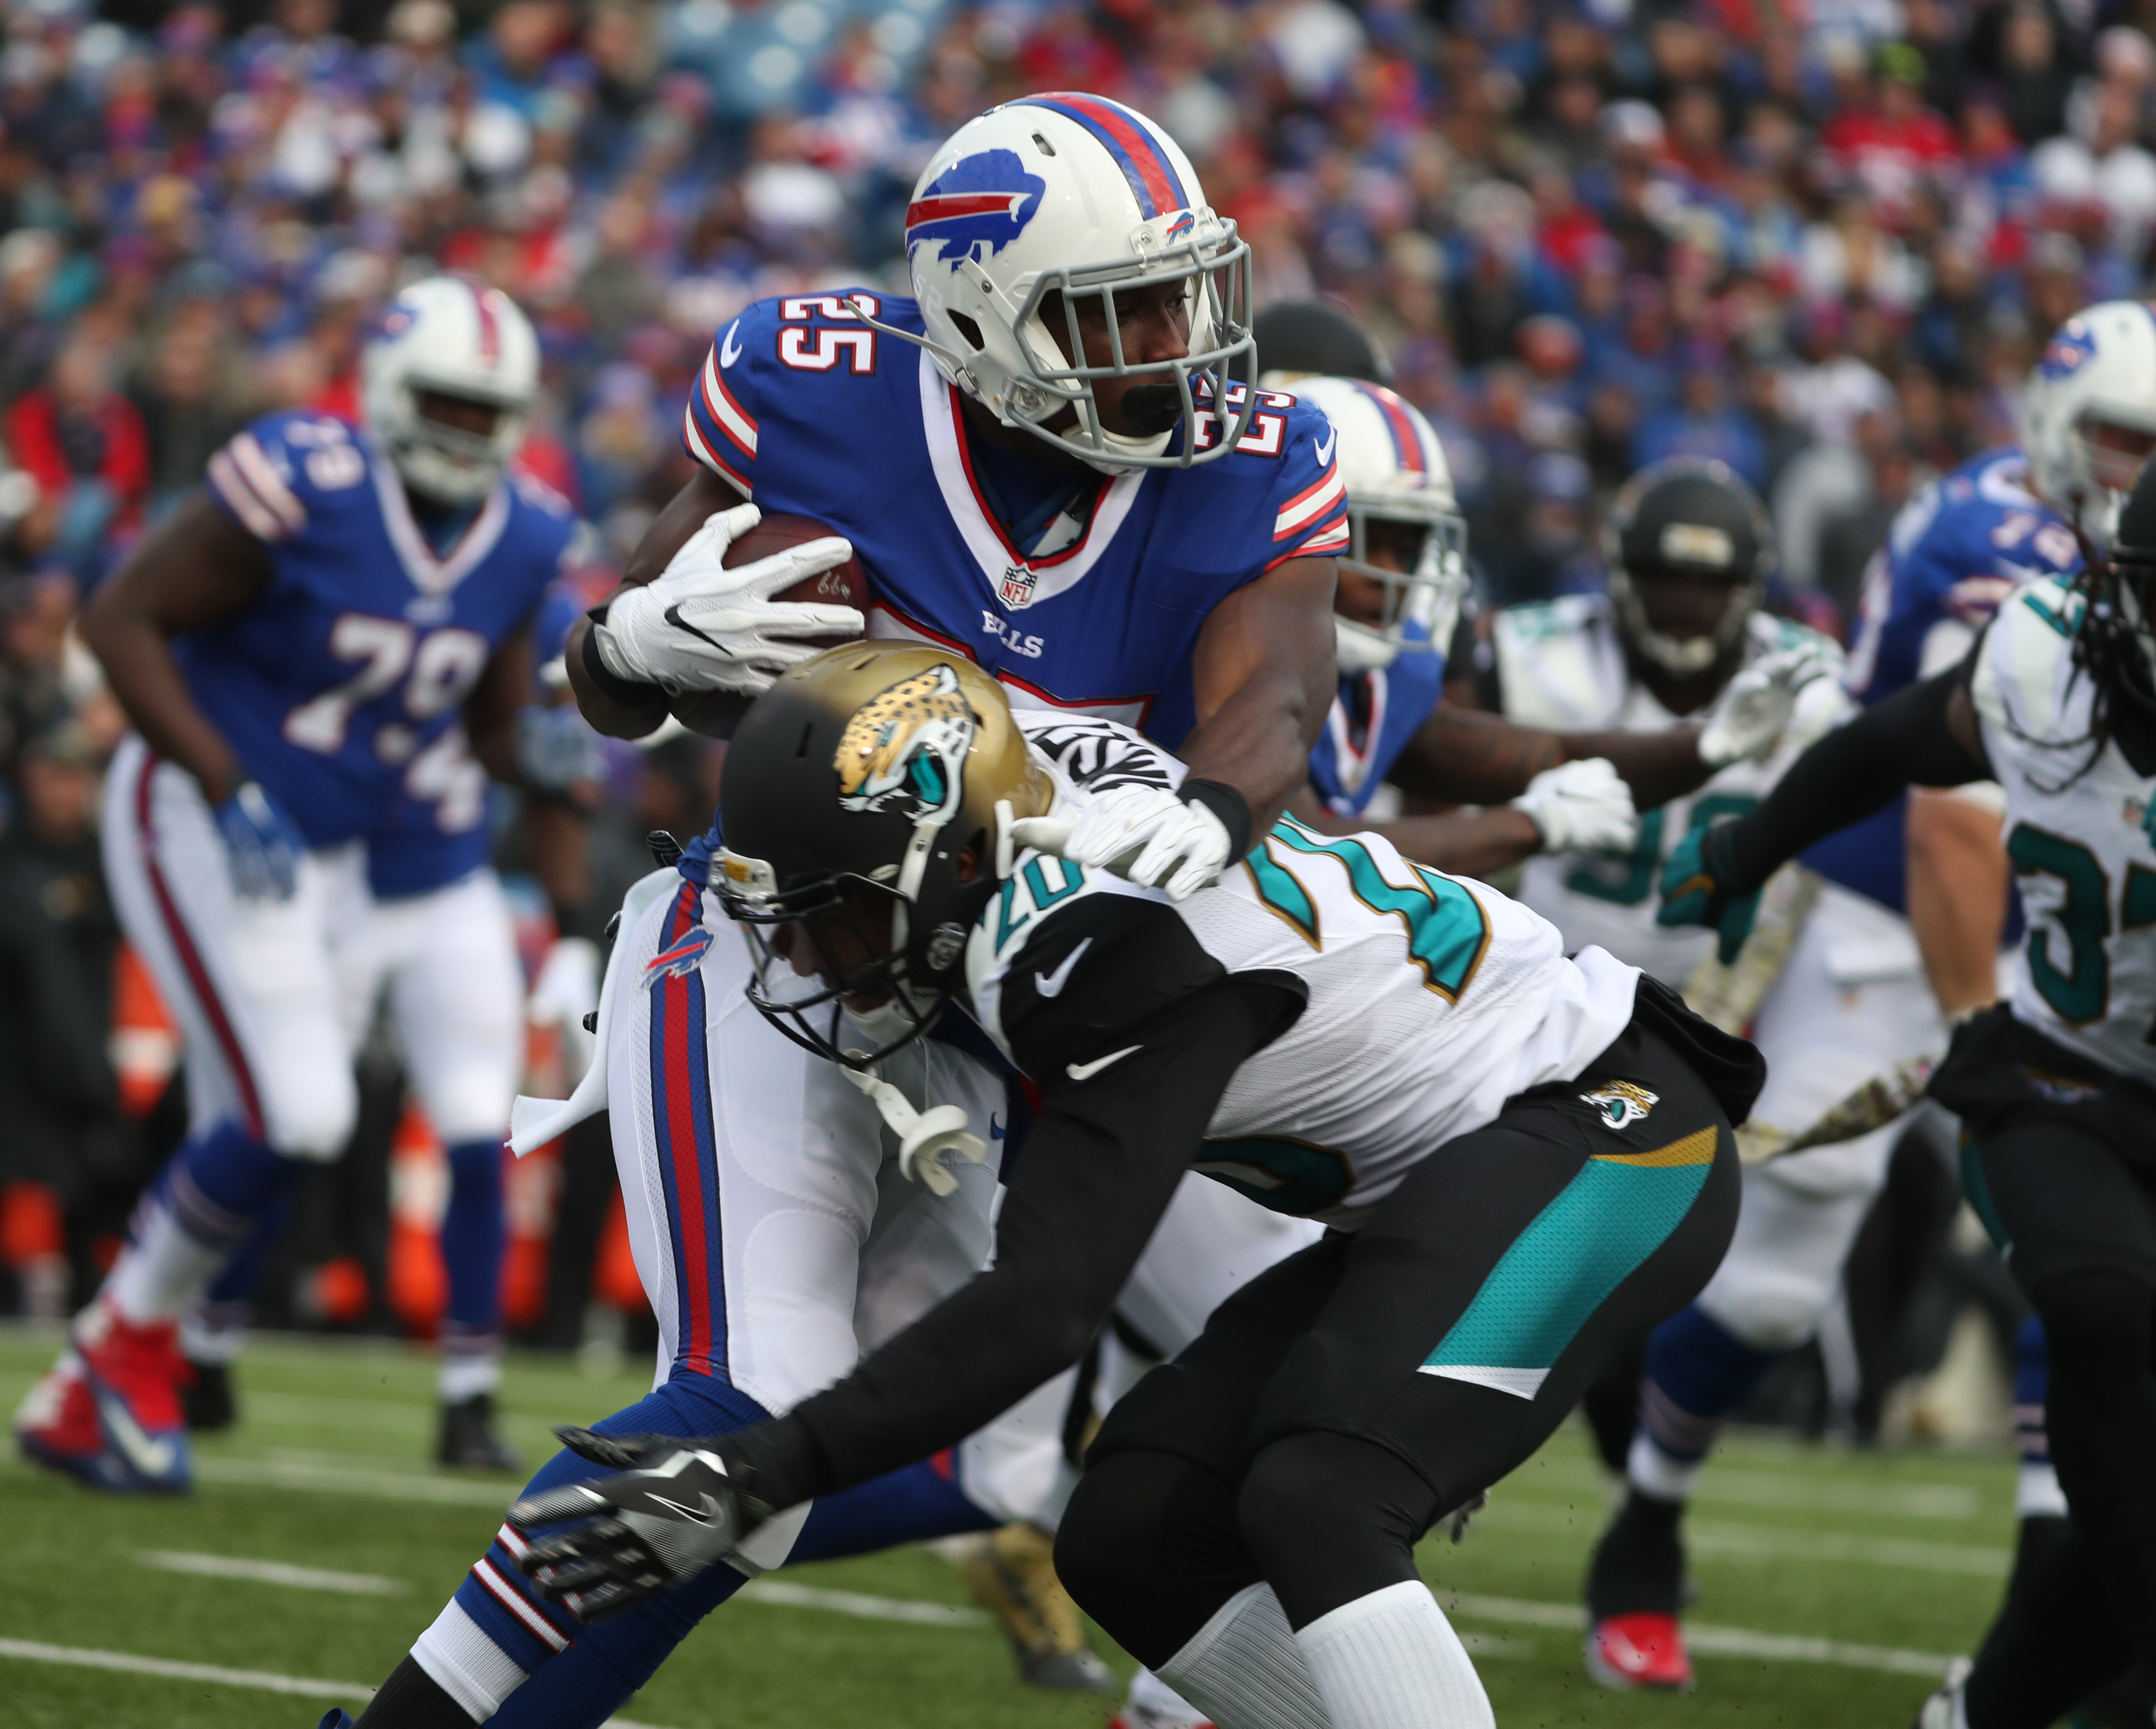 LeSean McCoy and the Buffalo Bills have the fifth-ranked red-zone offense in the NFL after Sunday's win over the Jaguars. (James P. McCoy/Buffalo News)